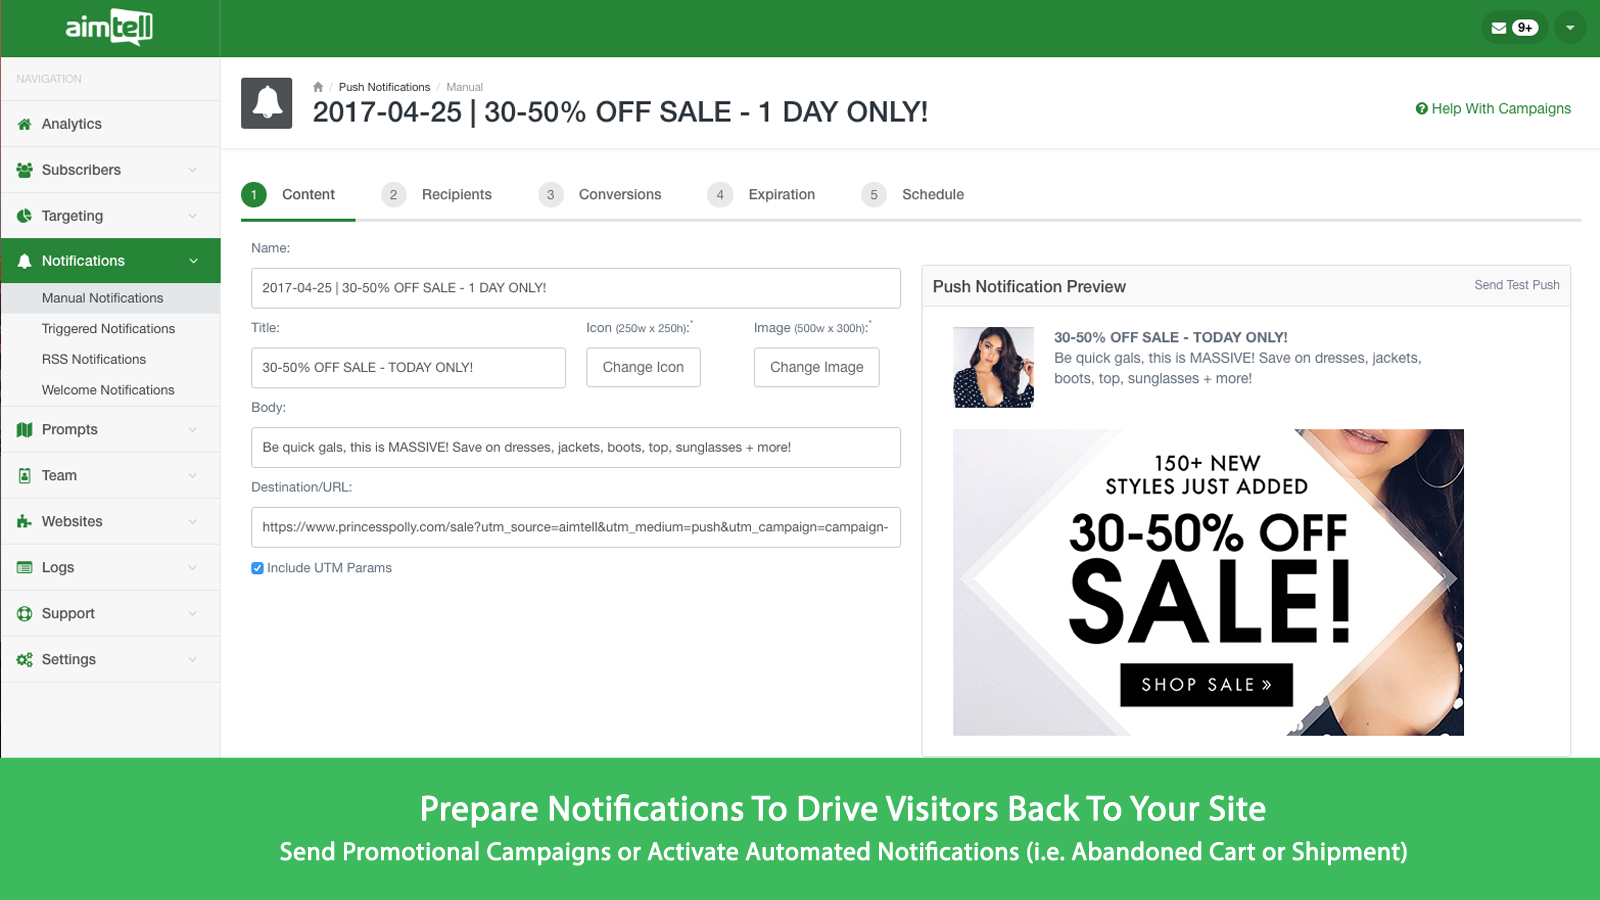 Drive visitors back to the website with promotional push campaigns